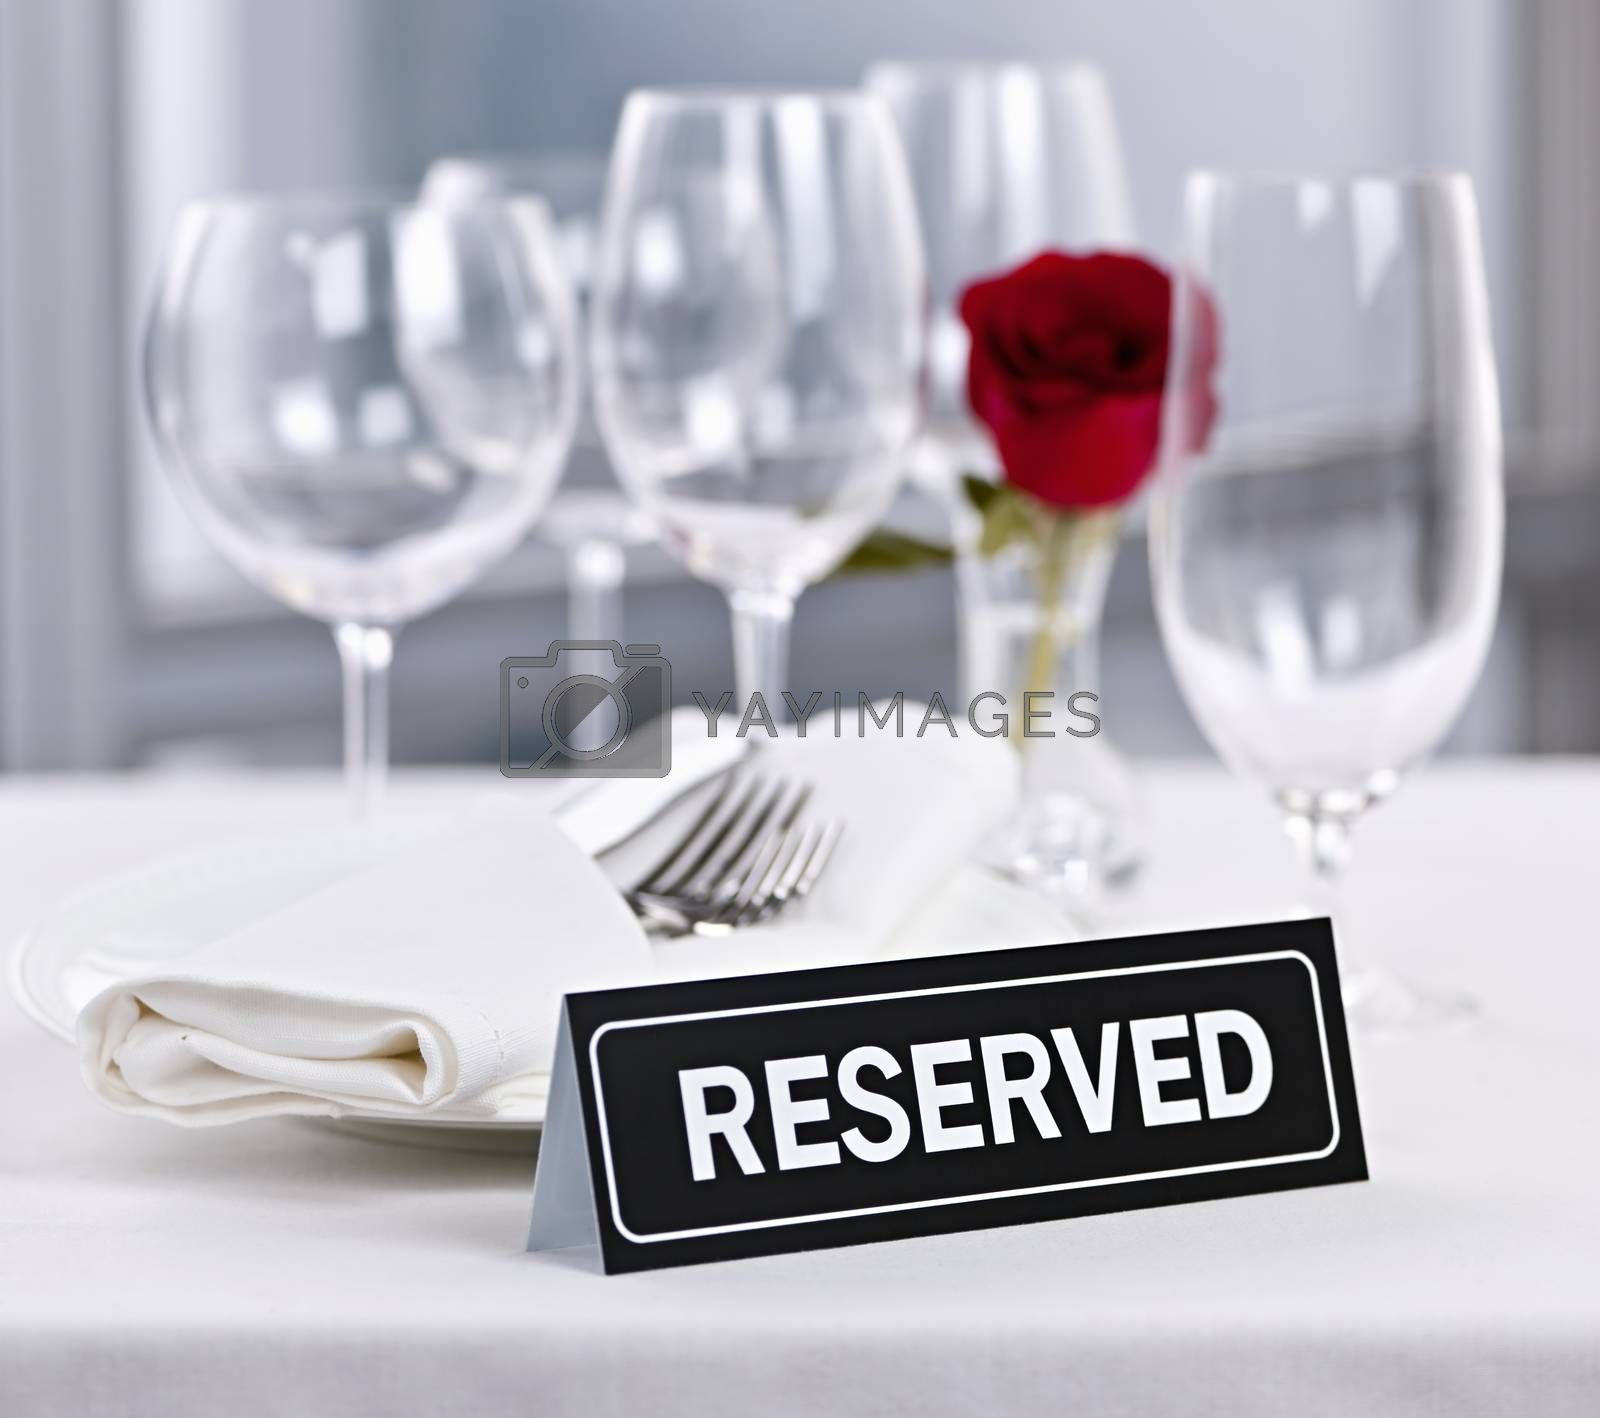 Reserved romantic restaurant table setting with roses plates and cutlery